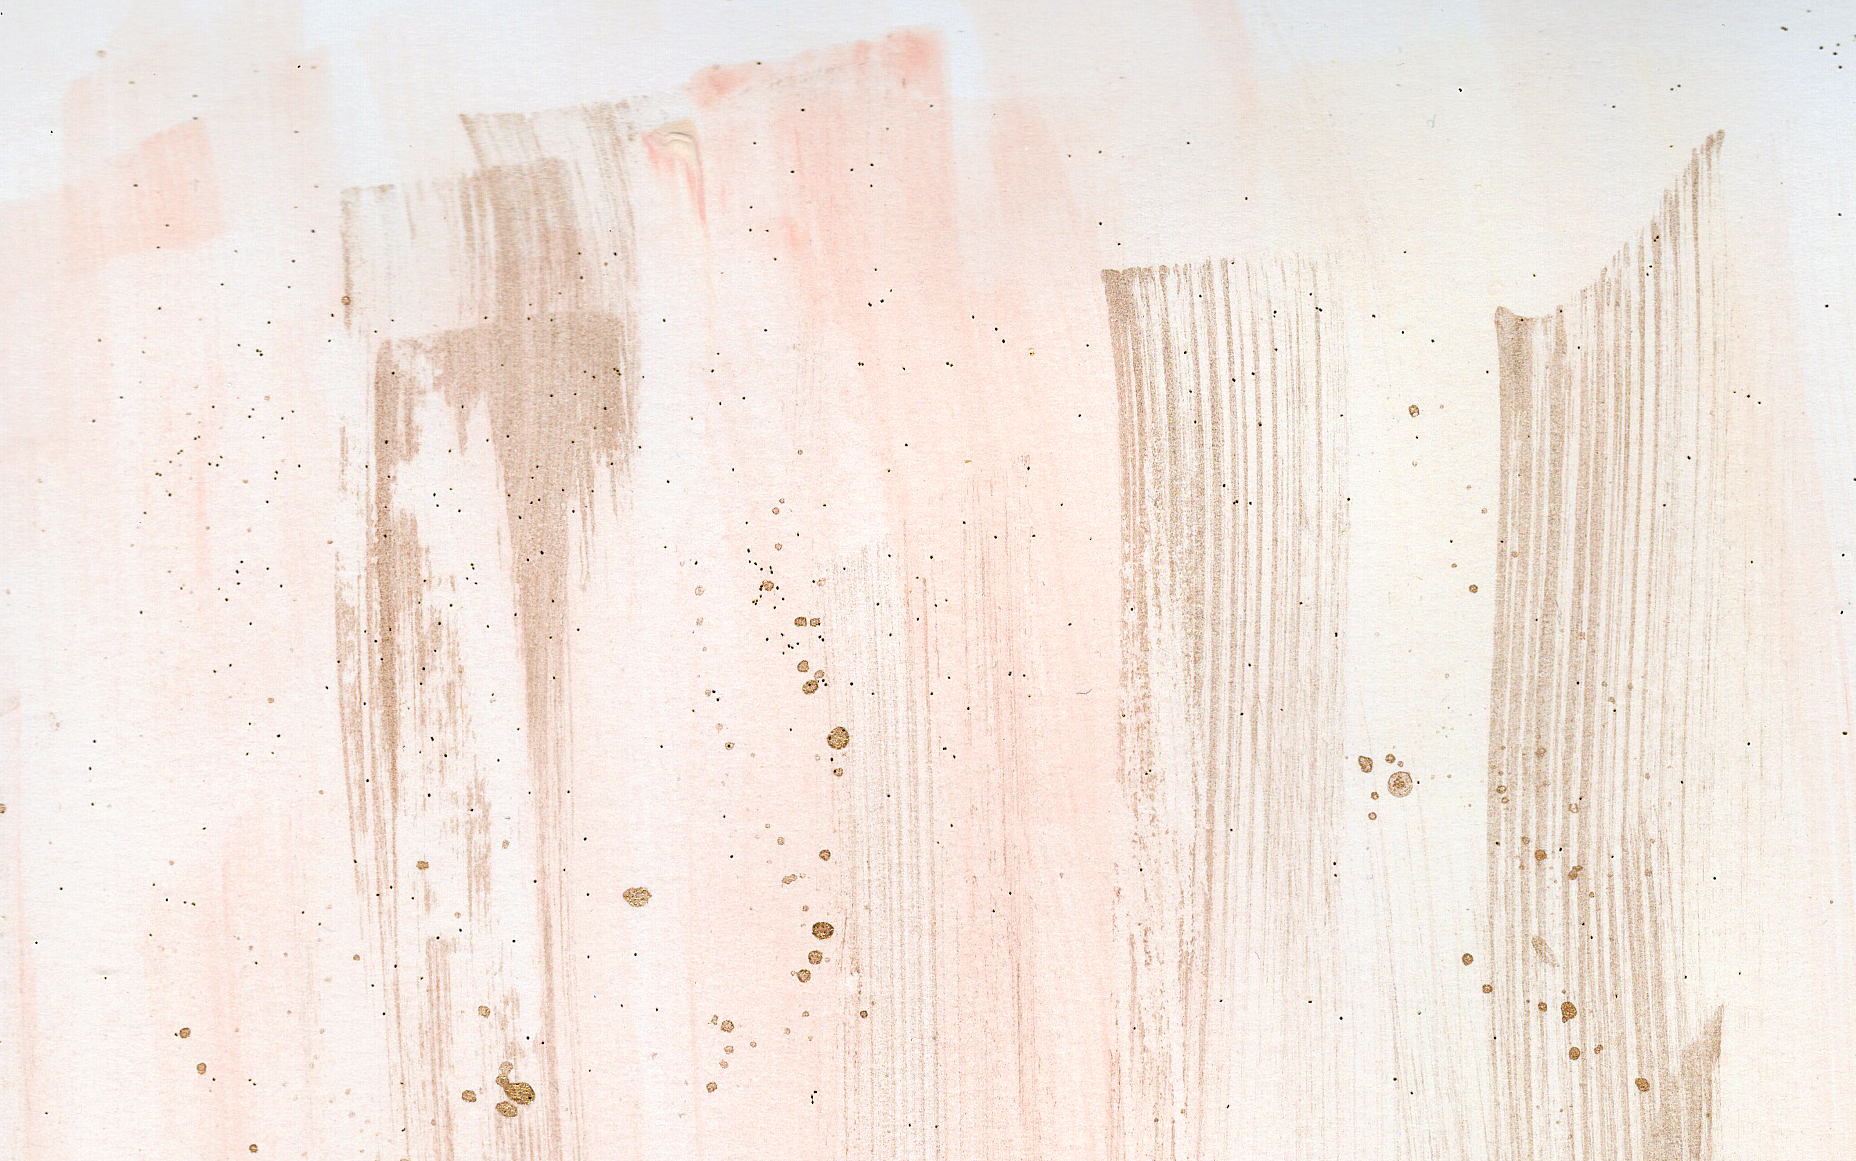 watercolour coral blush gold brushstroke desktop wallpaper background tech pinterest coral blush wallpaper backgrounds and coral